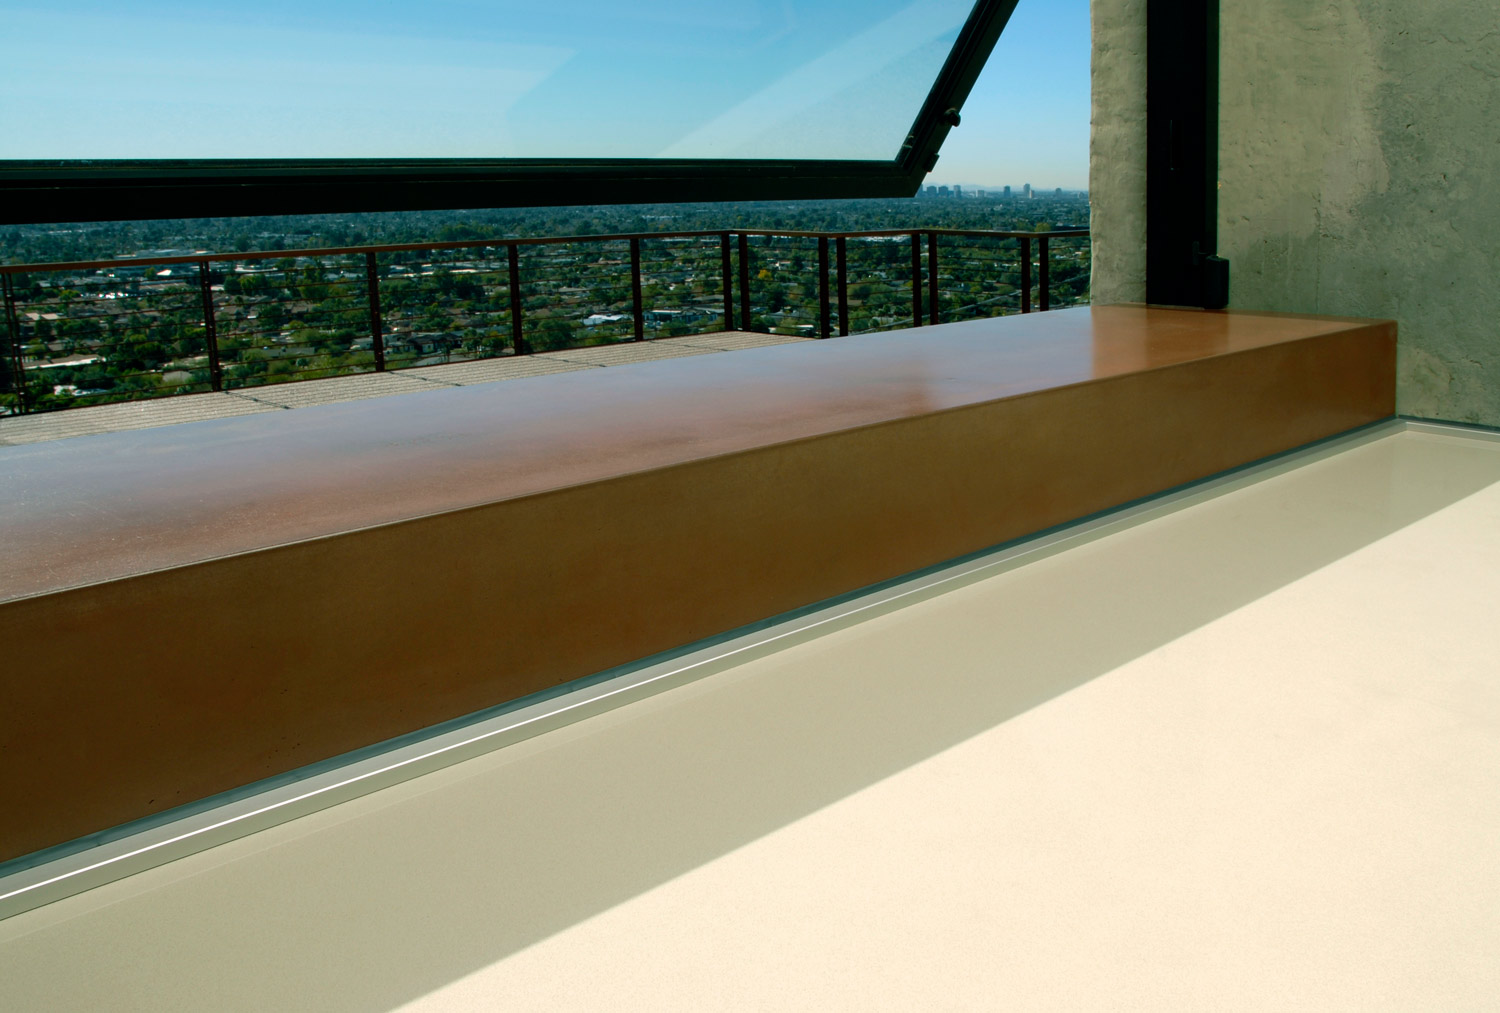 A red concrete countertop and window sill for a high end private residence on the side of camelback mountain in scottsdale, AZ